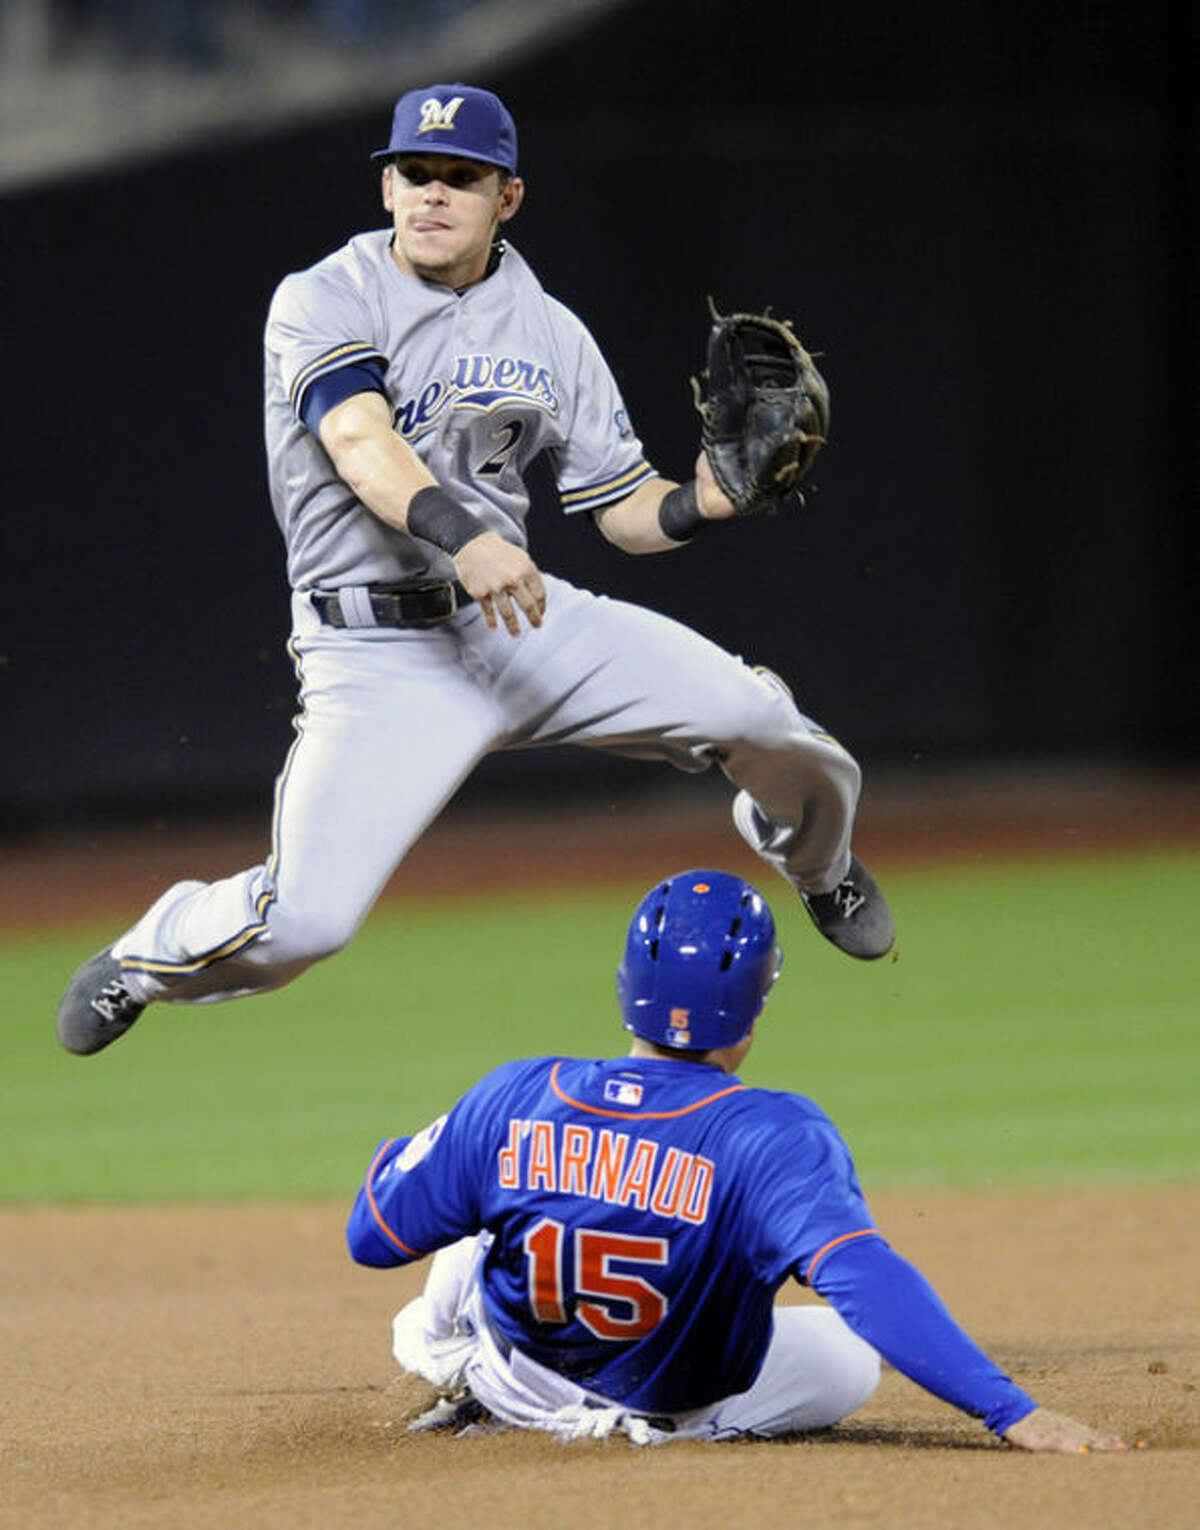 New York Mets' Travis d'Arnaud (15) is out at second base as Milwaukee Brewers second baseman Scooter Gennett relays the ball to first to complete the double play on Mets' Wilfredo Tovar during the fifth inning of a baseball game Friday, Sept. 27, 2013, in New York. (AP Photo/Bill Kostroun)